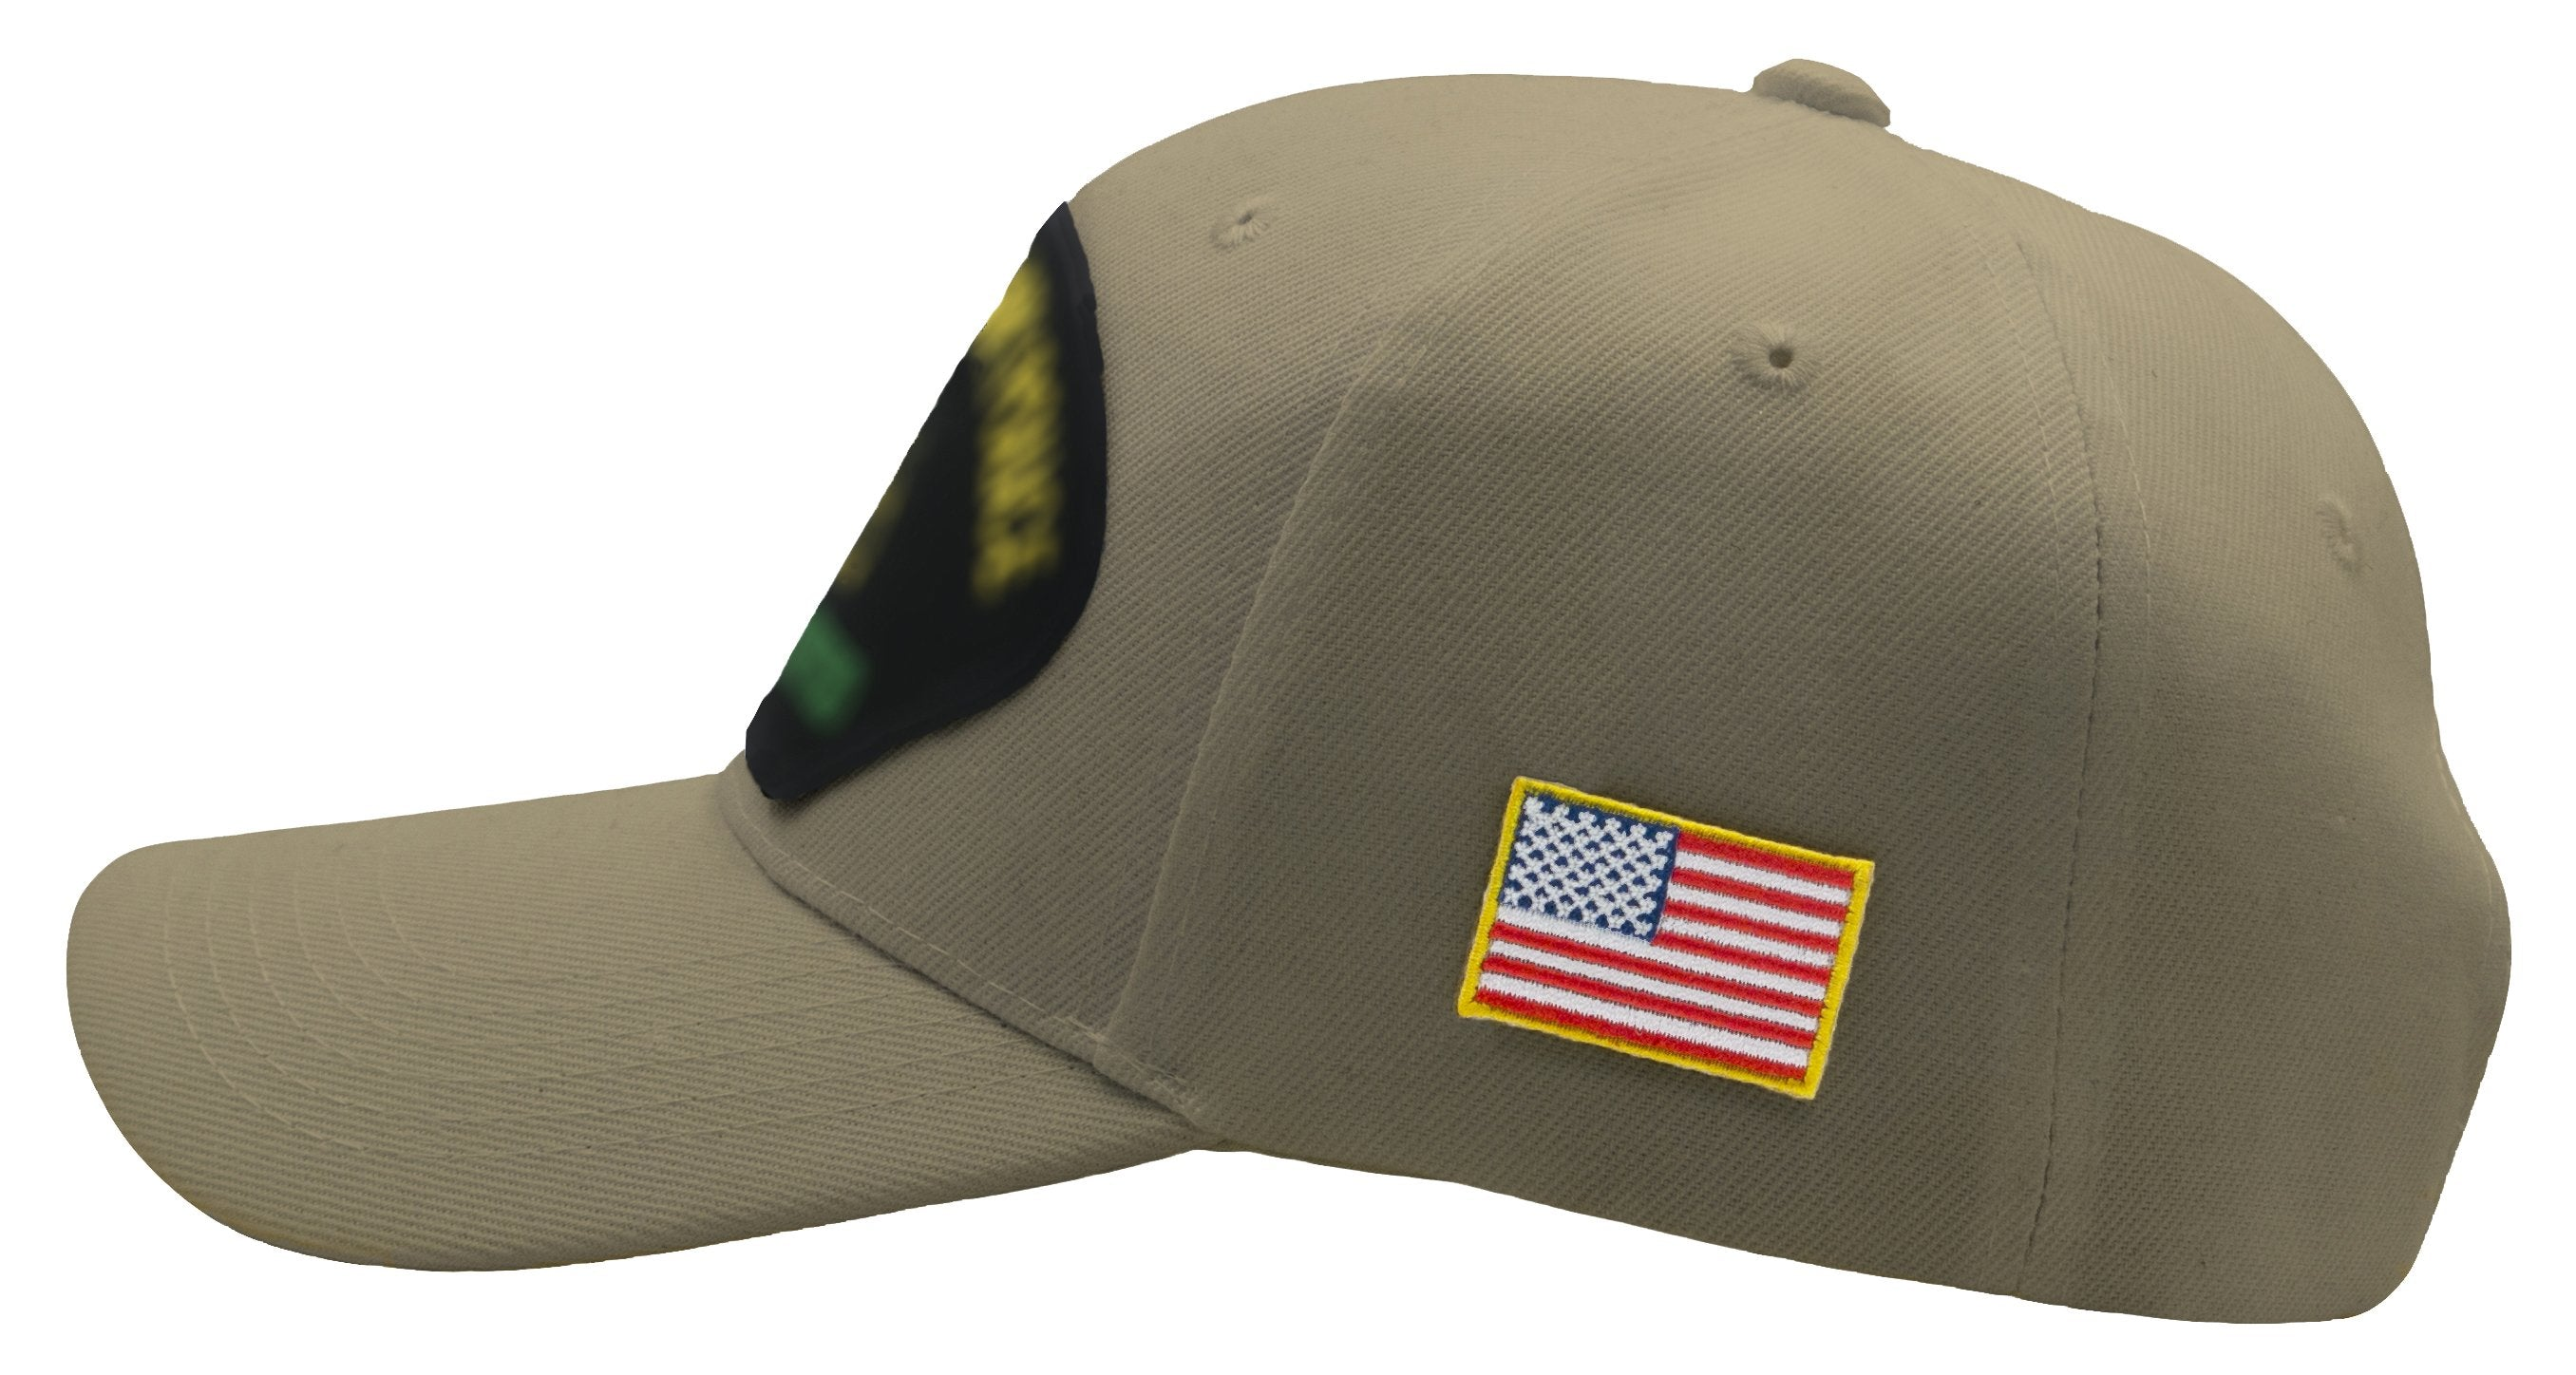 25th Infantry Division -Vietnam Veteran Hat - Multiple Colors Available